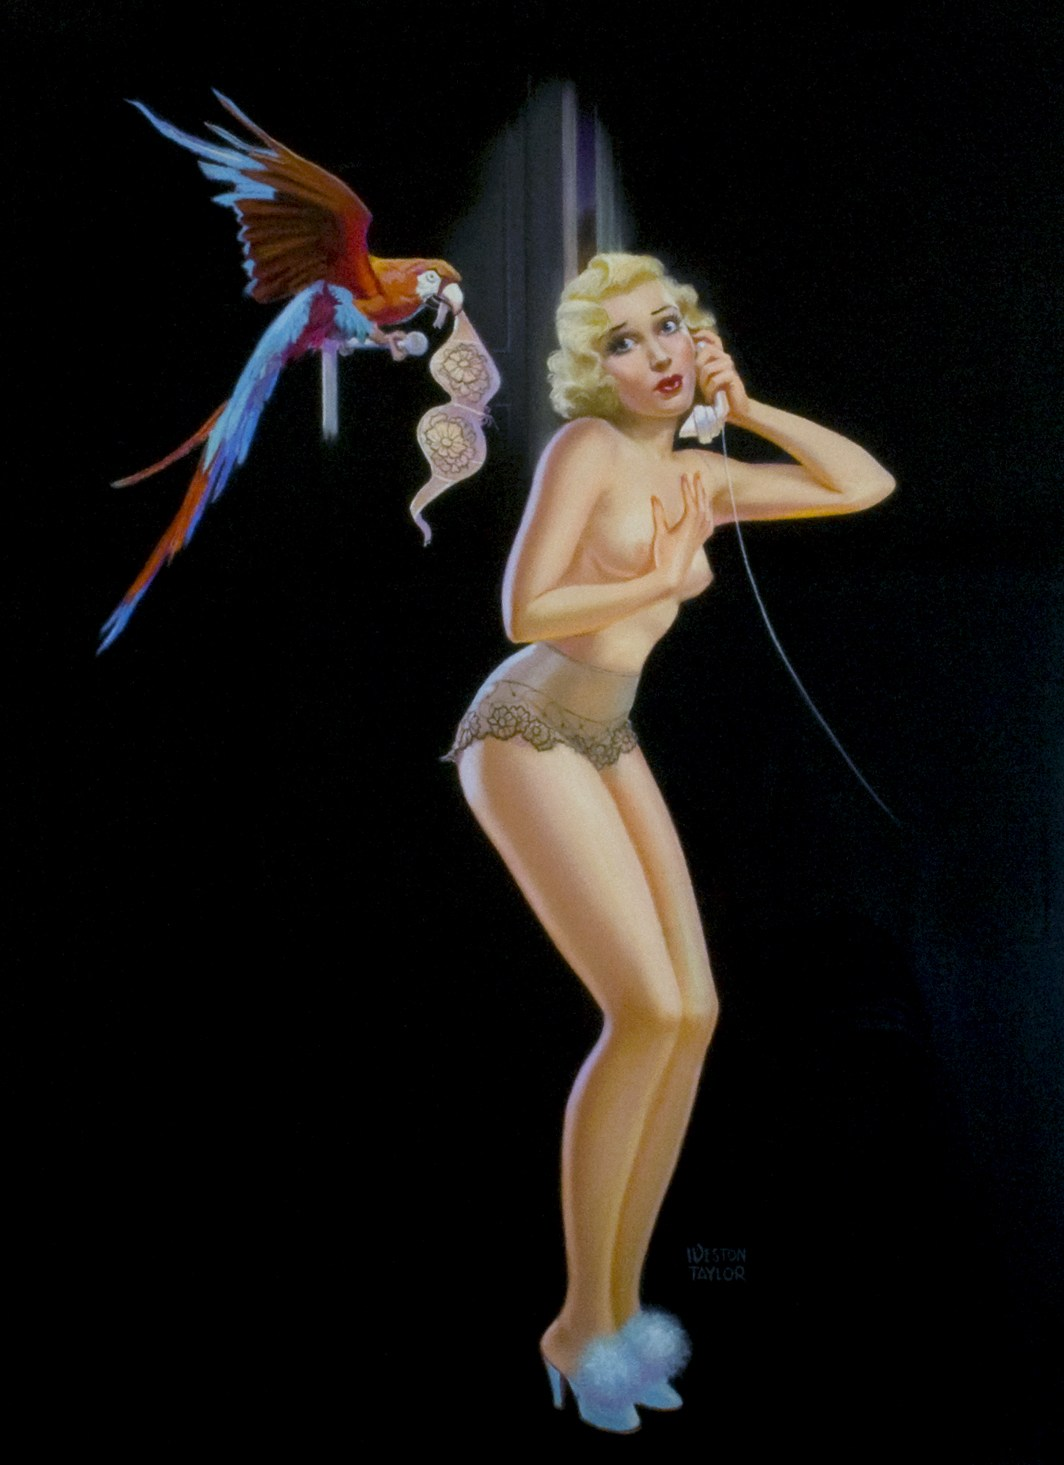 Disconnected, Weston Taylor, 1942, Calendar Art for The C. Moss Company